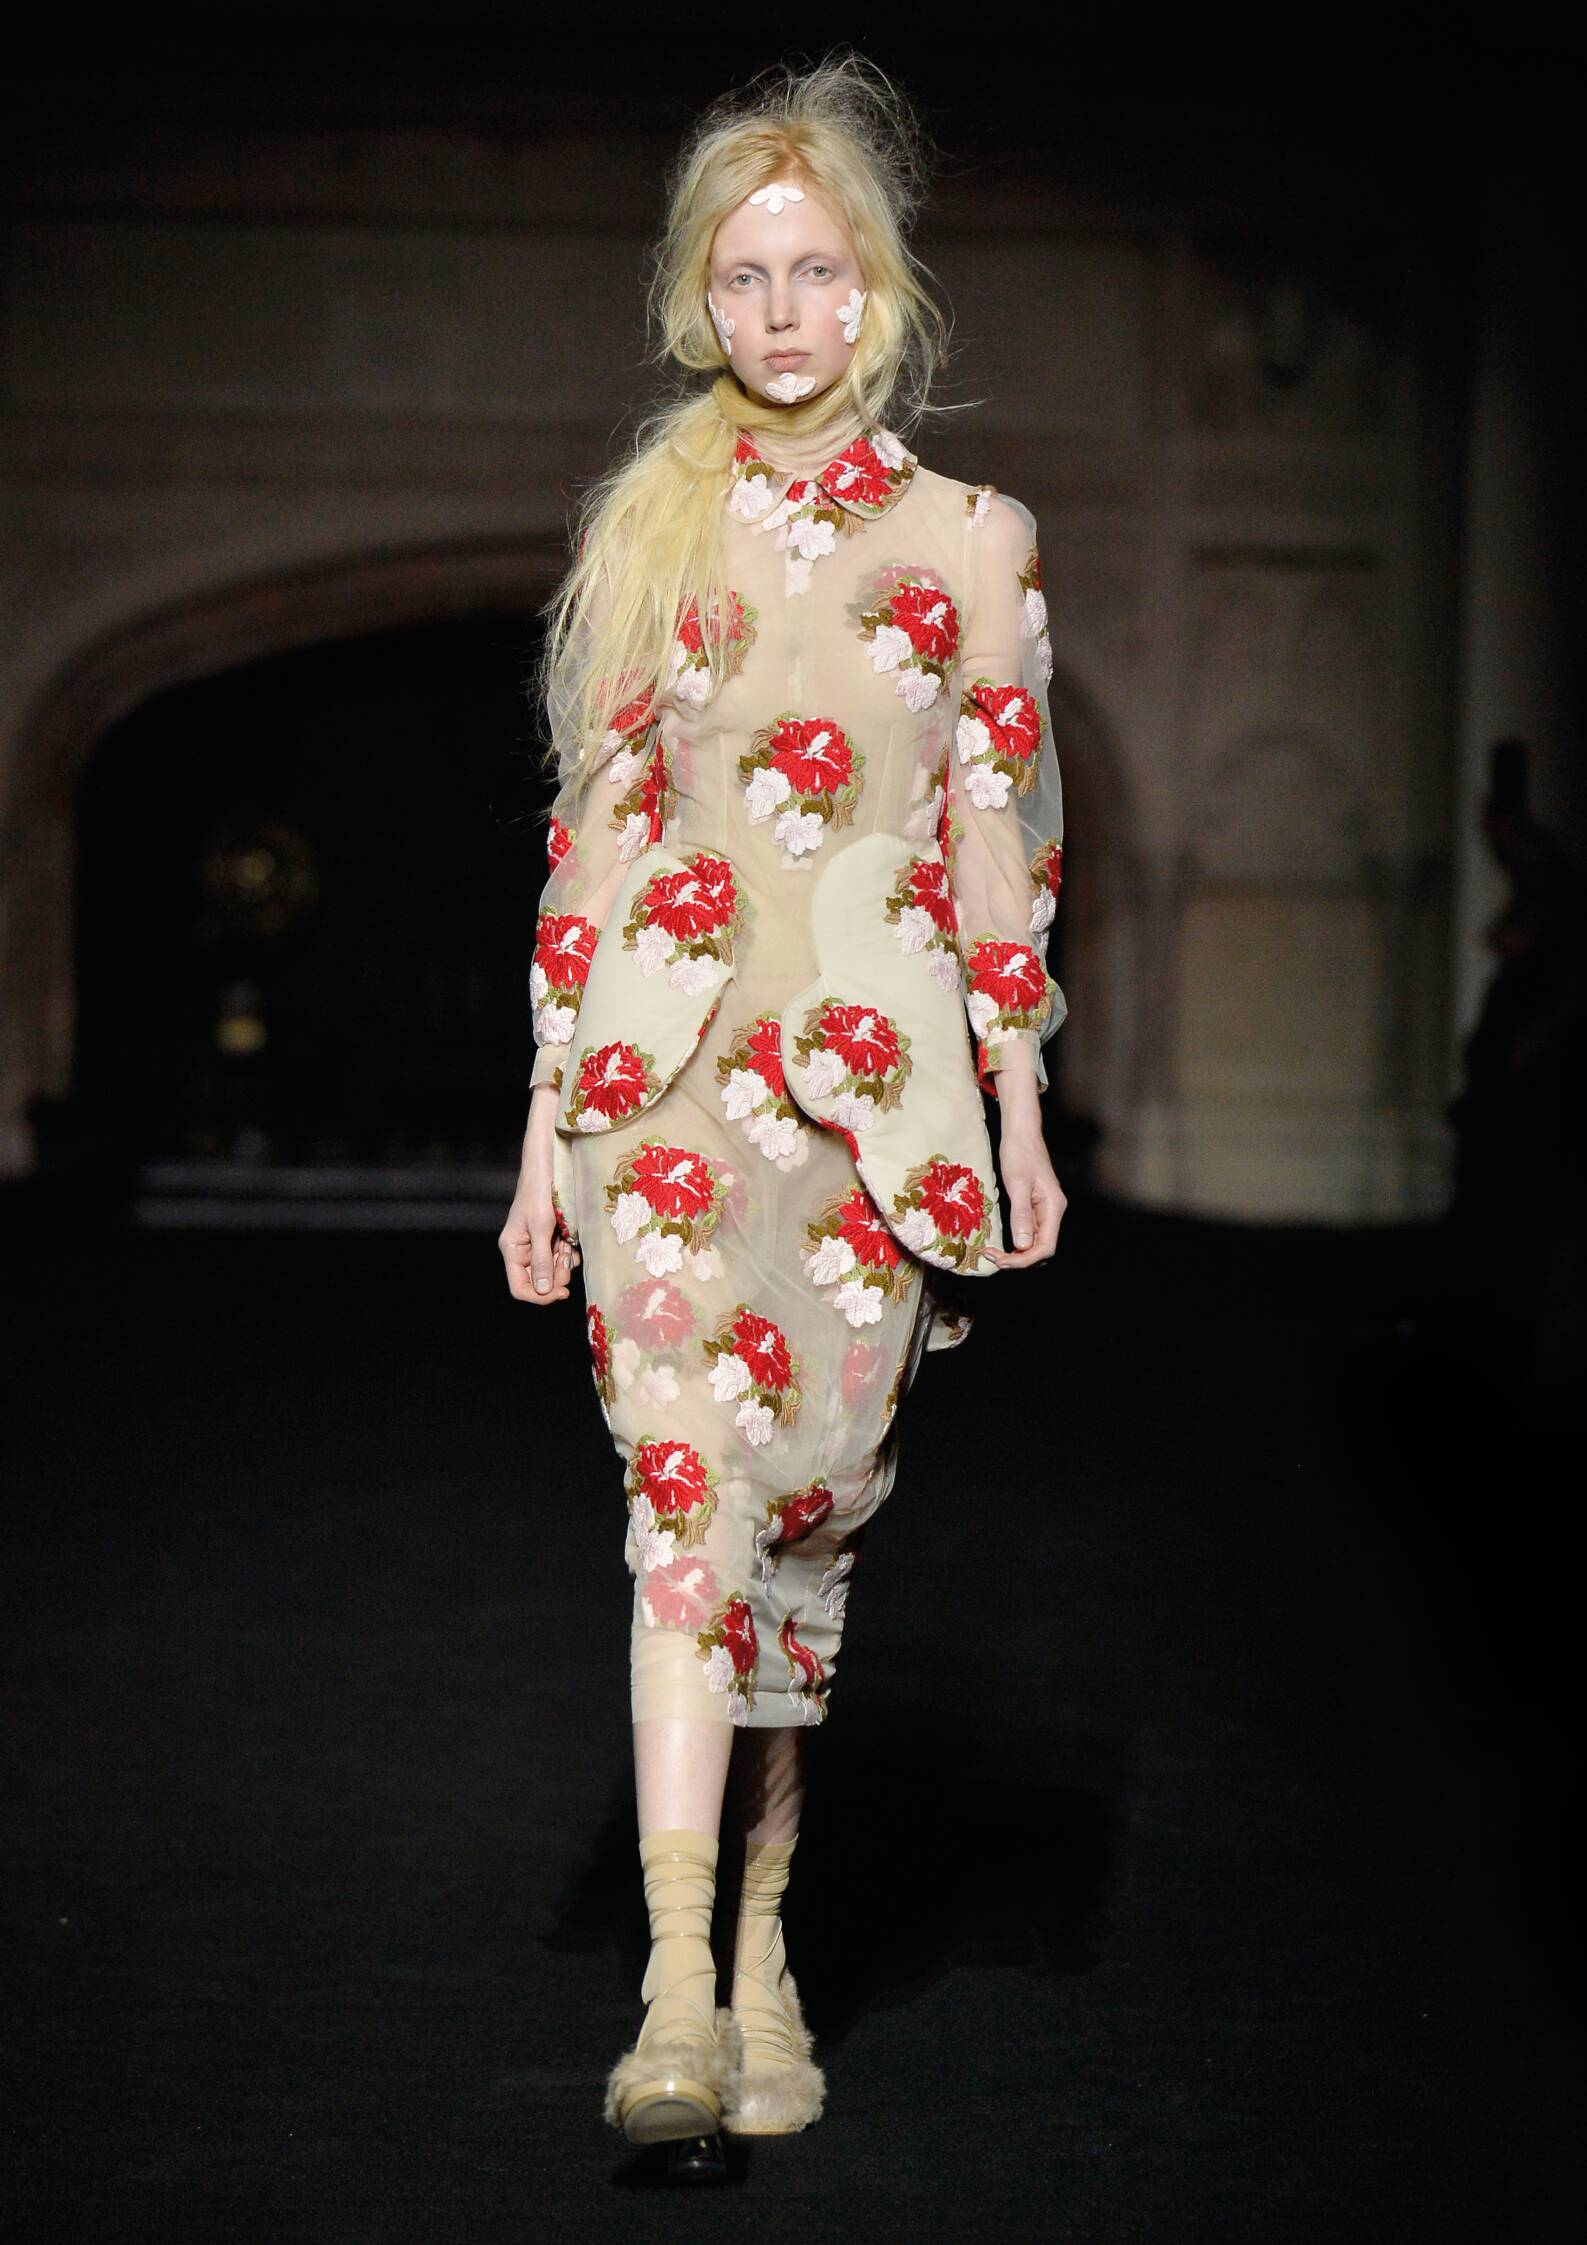 Catwalk Simone Rocha Fall Winter 2015 16 Women's Collection London Fashion Week